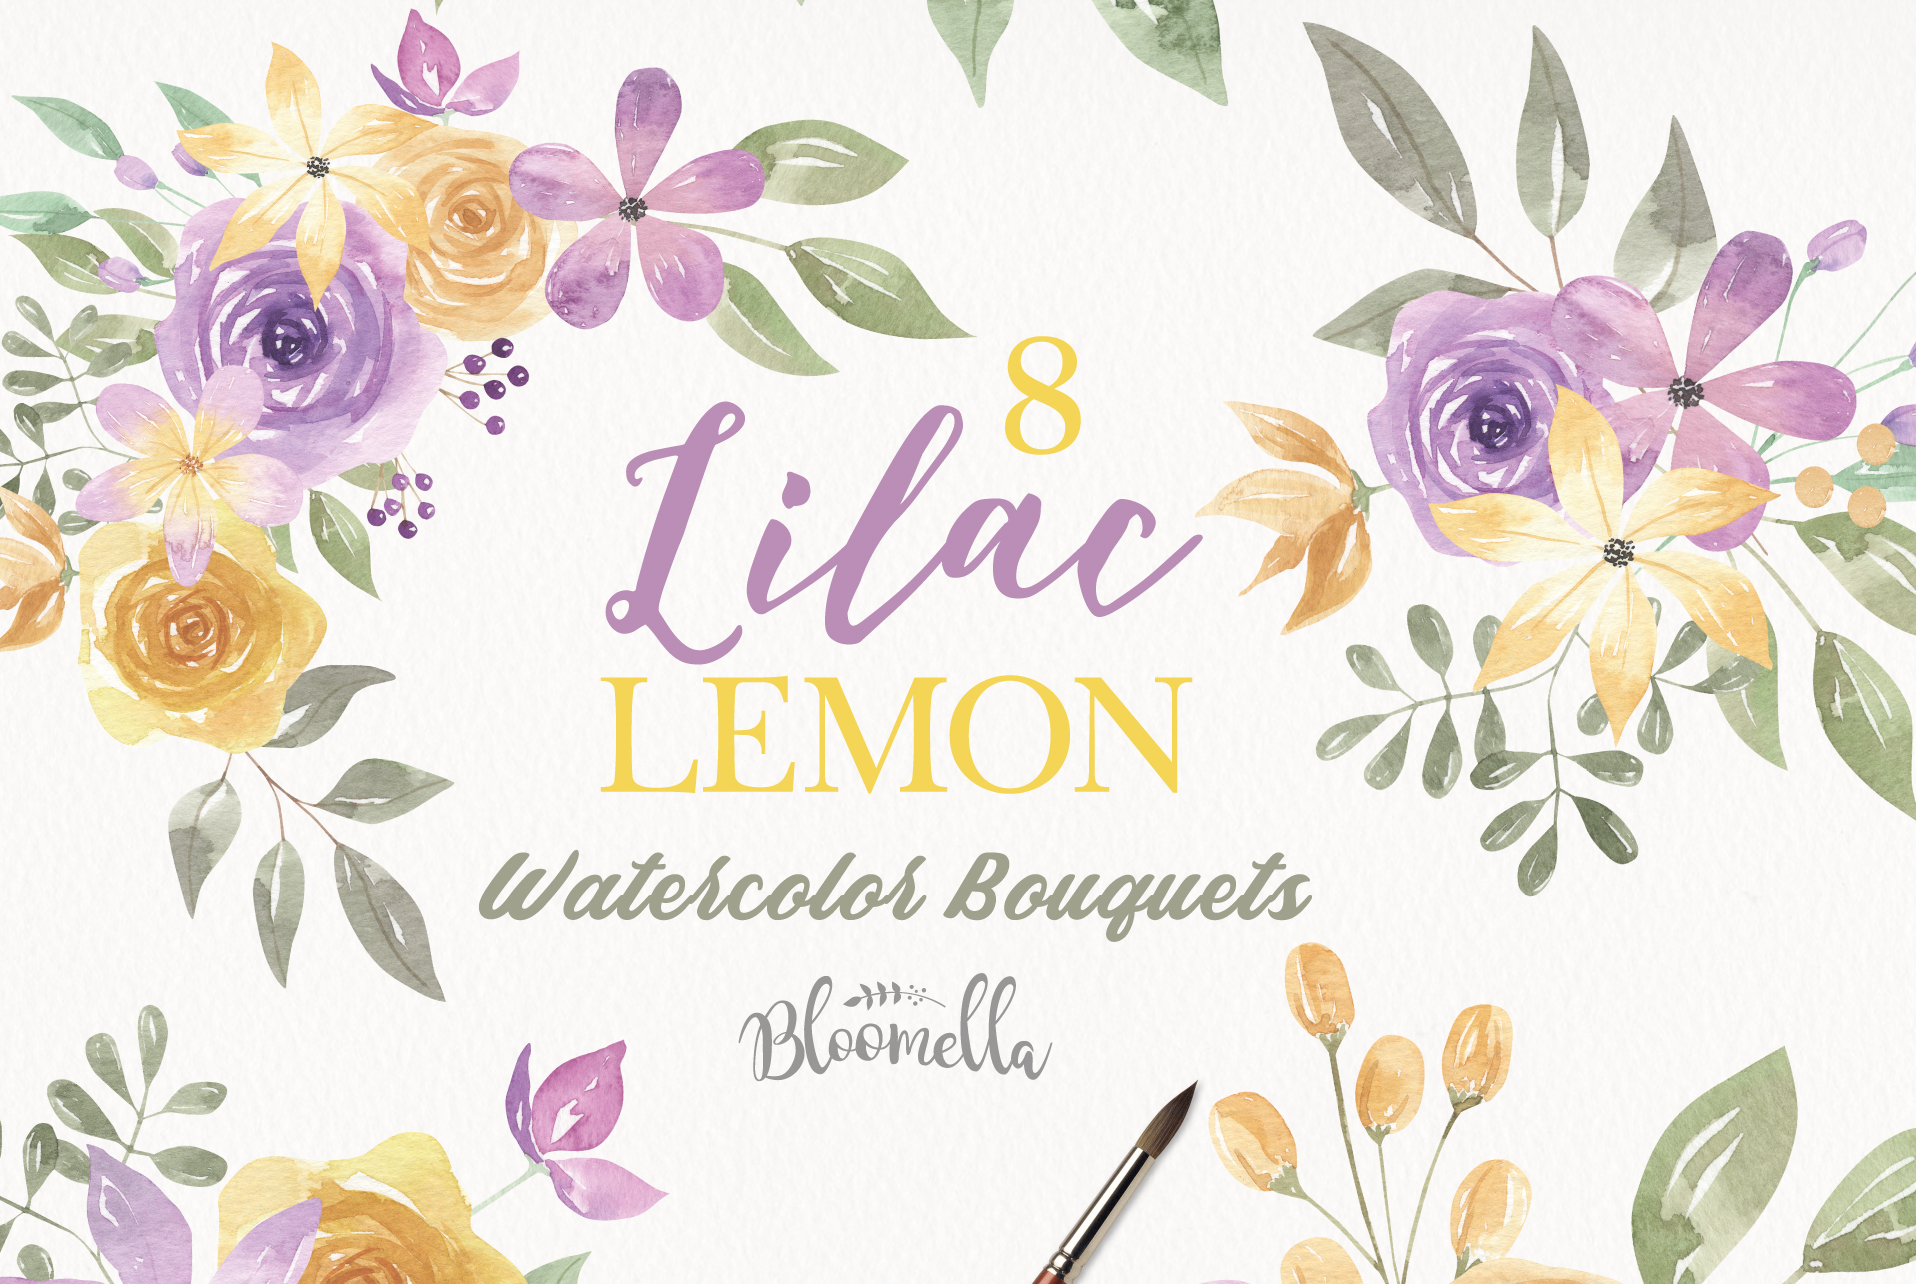 Download Free Lilac Lemon Flower Bouquets Graphic By Bloomella Creative Fabrica for Cricut Explore, Silhouette and other cutting machines.